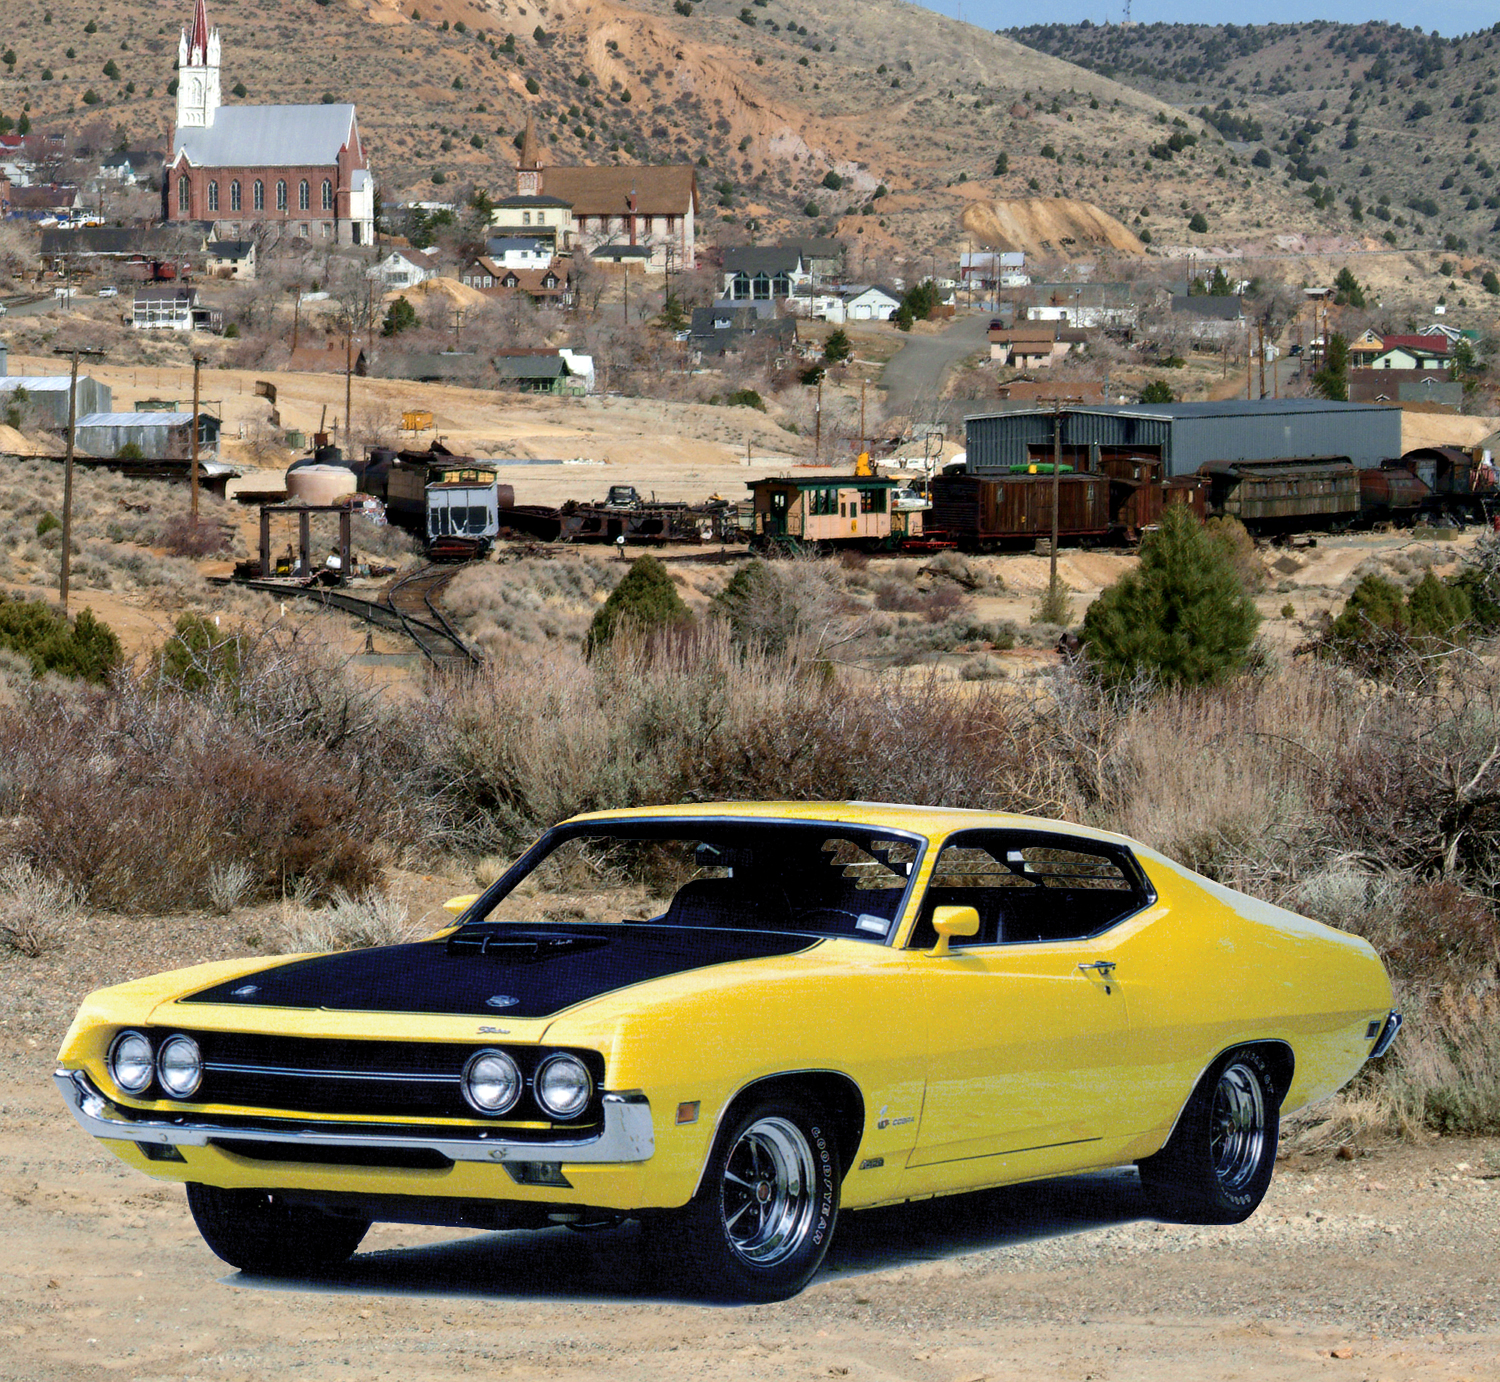 1970 Ford Torino Parts for Sales | 1968 to 1971 Ford Torino